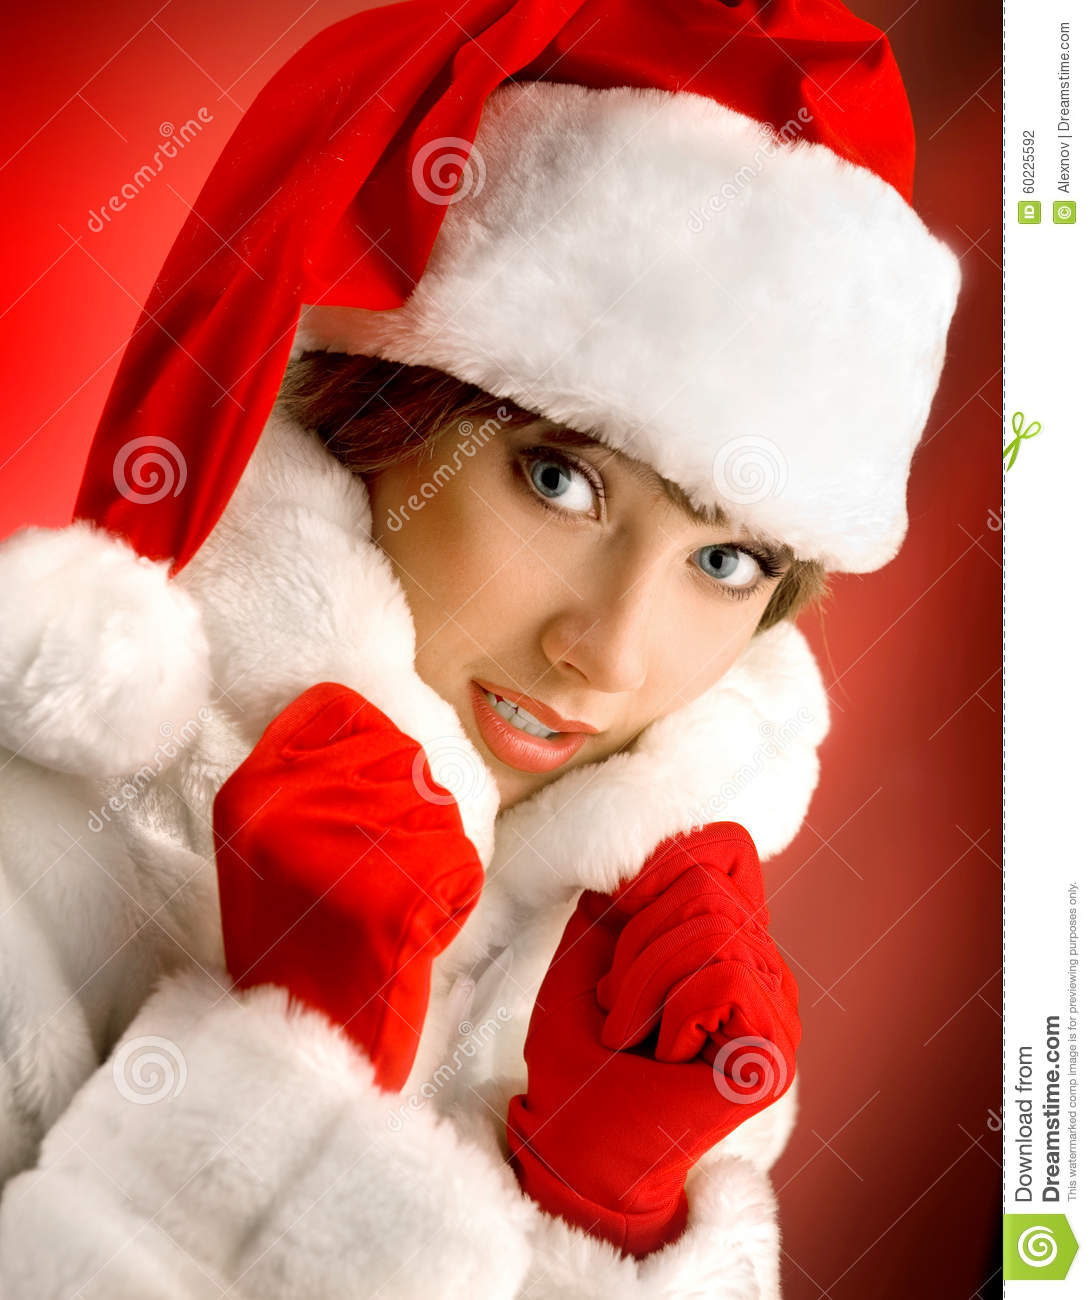 f4b9b1efbed4 Attractive Girl In A White Fur Coat And Santa Claus Hat On The R ...